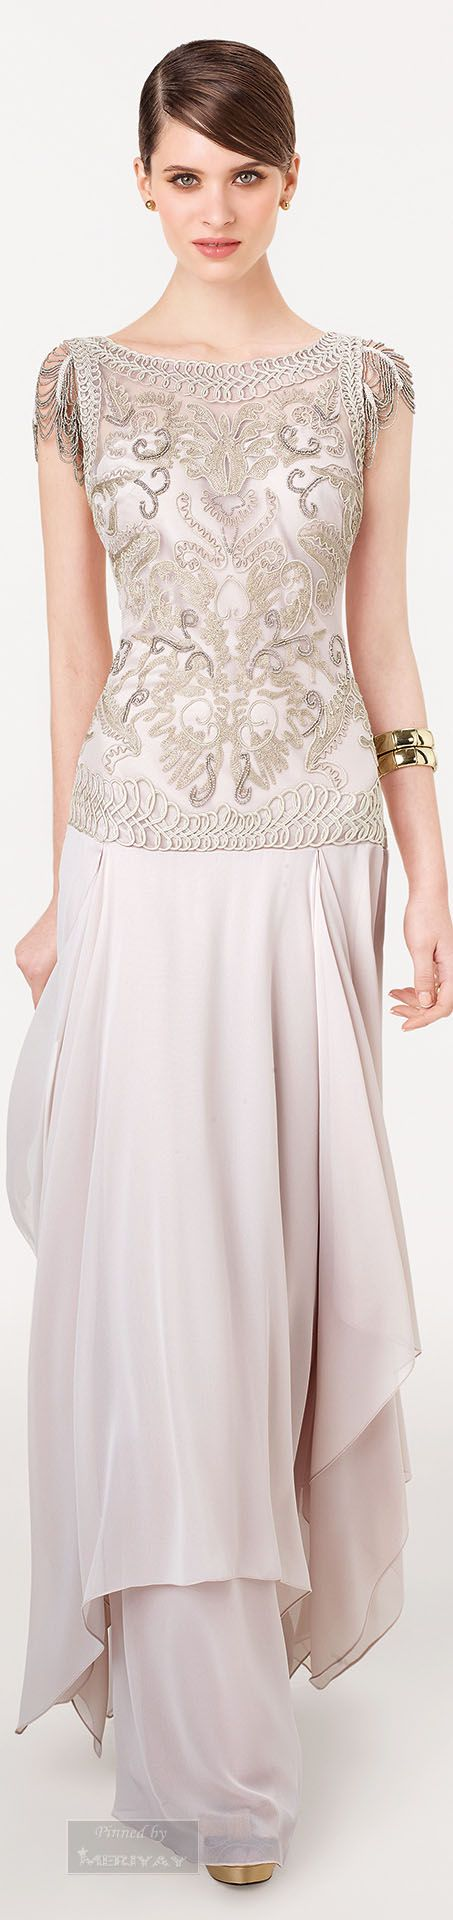 Aire Barcelona ~ Lace Bodice Evening Gown, Barely Beige, 2015Wedding Dresses, Bridesmaids Outfits, Gowns 2015 Becky Jordan http://fashionfun.redmittenantiques.com/home